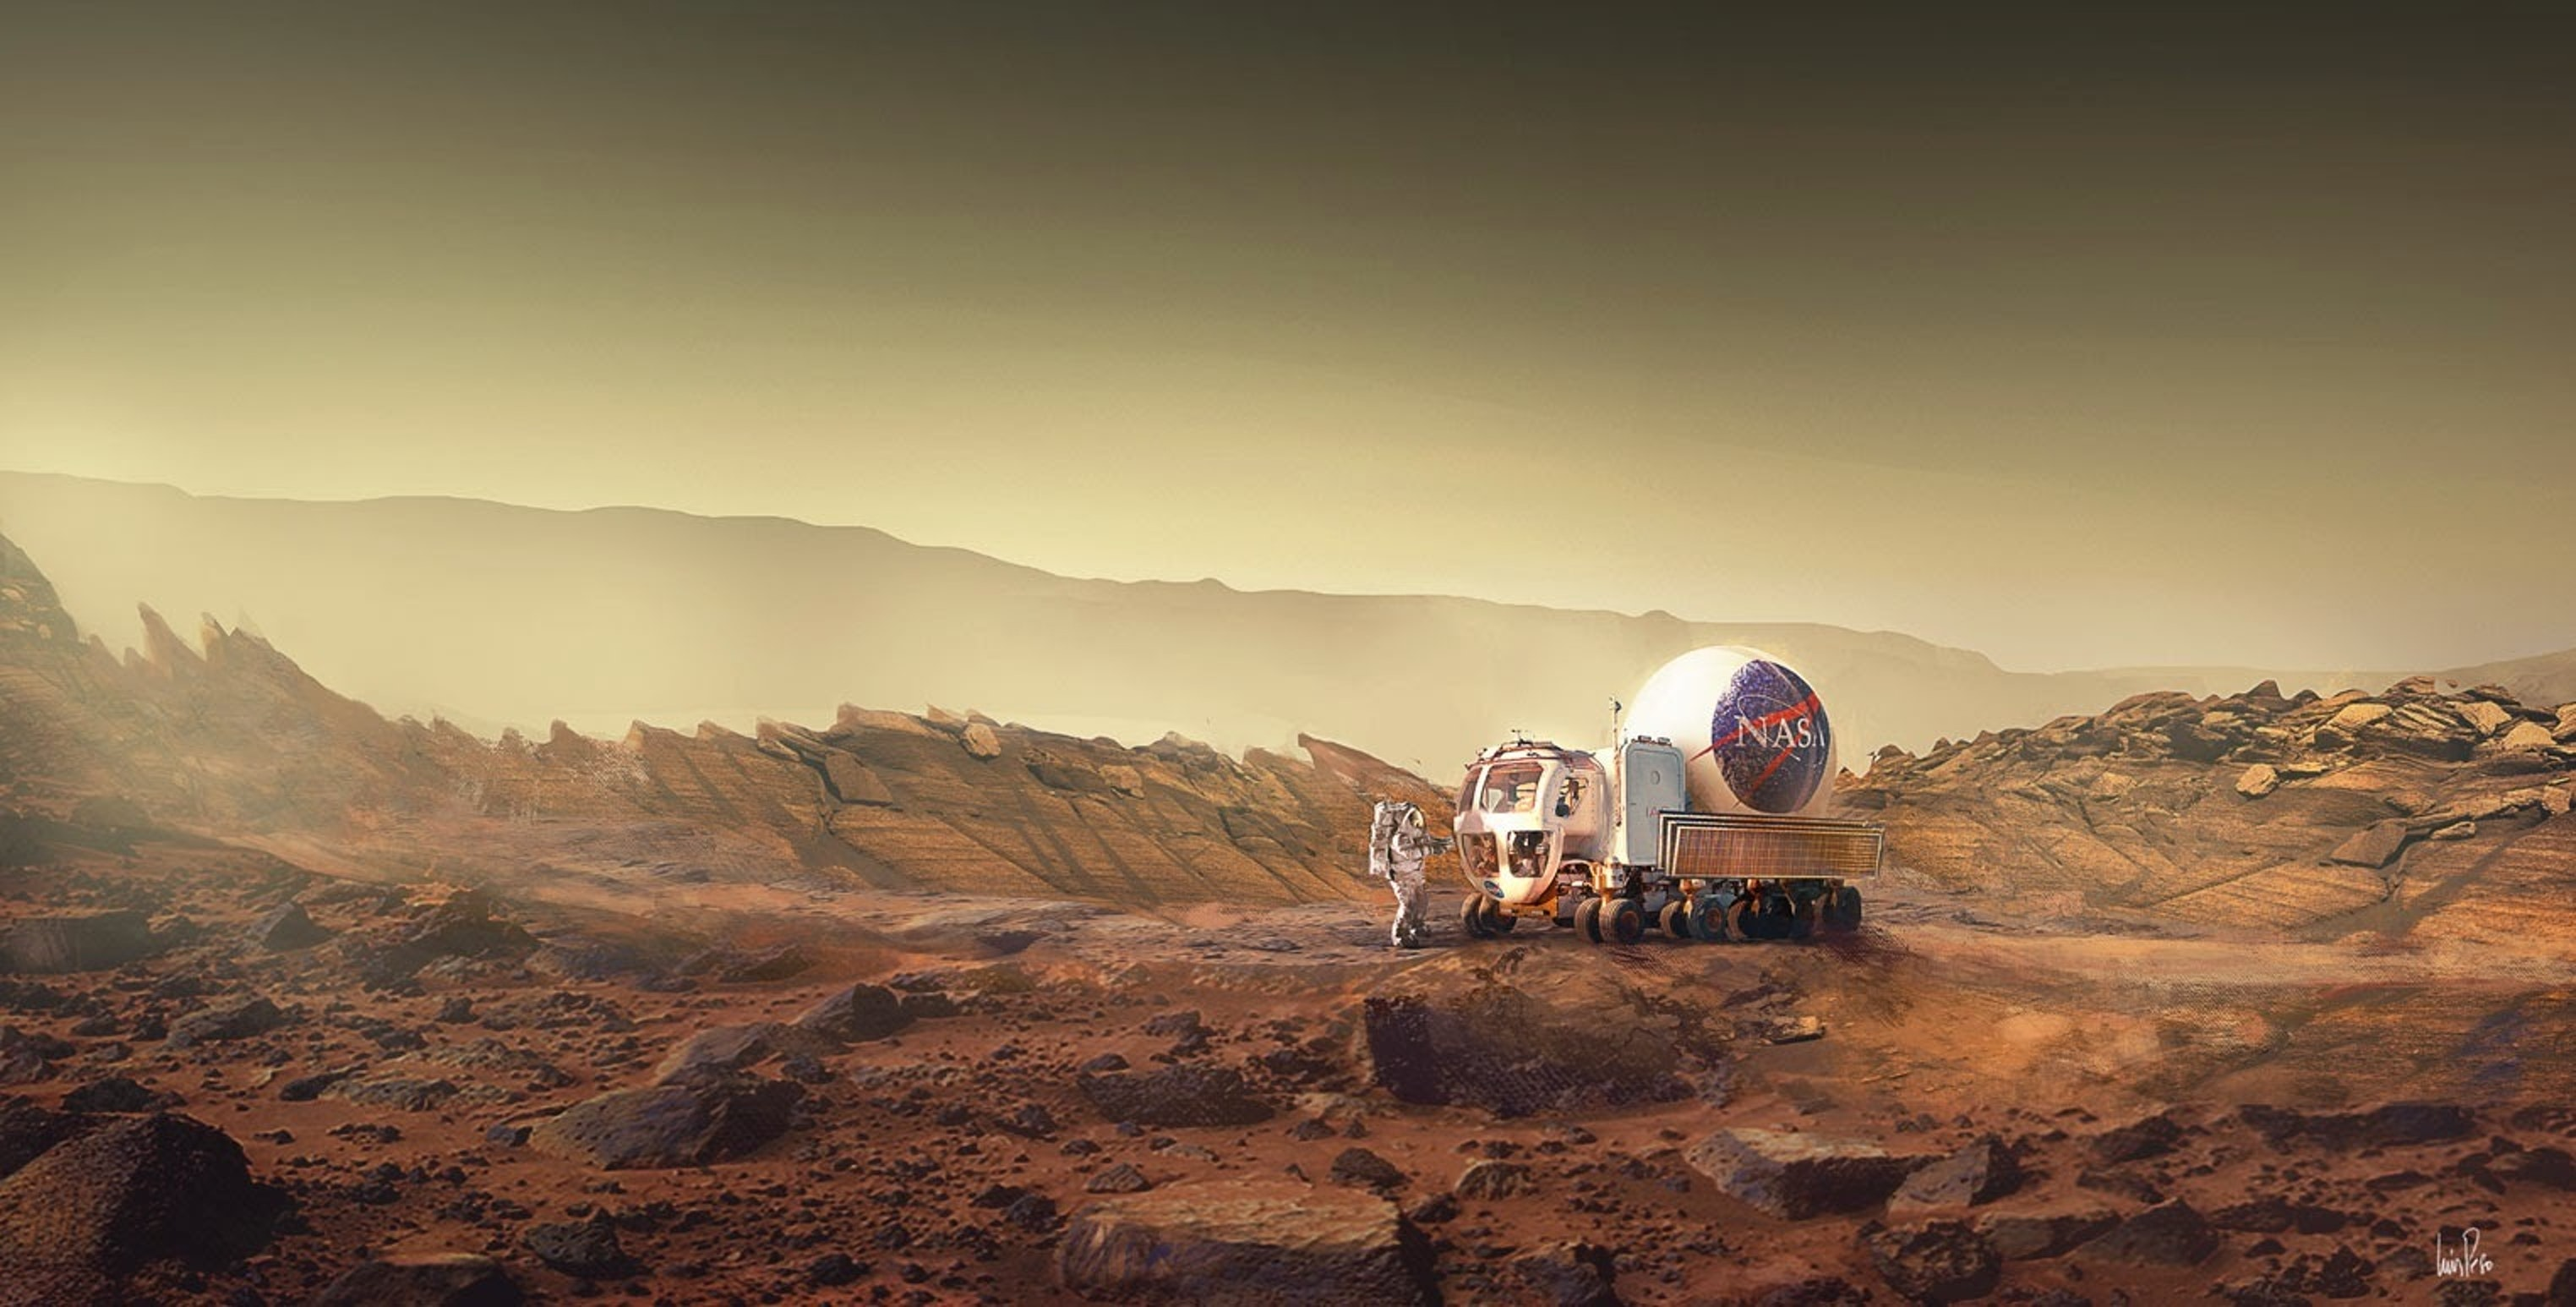 Luis Peso's depiction of Mars based on Andy Weir's book 'The Martian'.